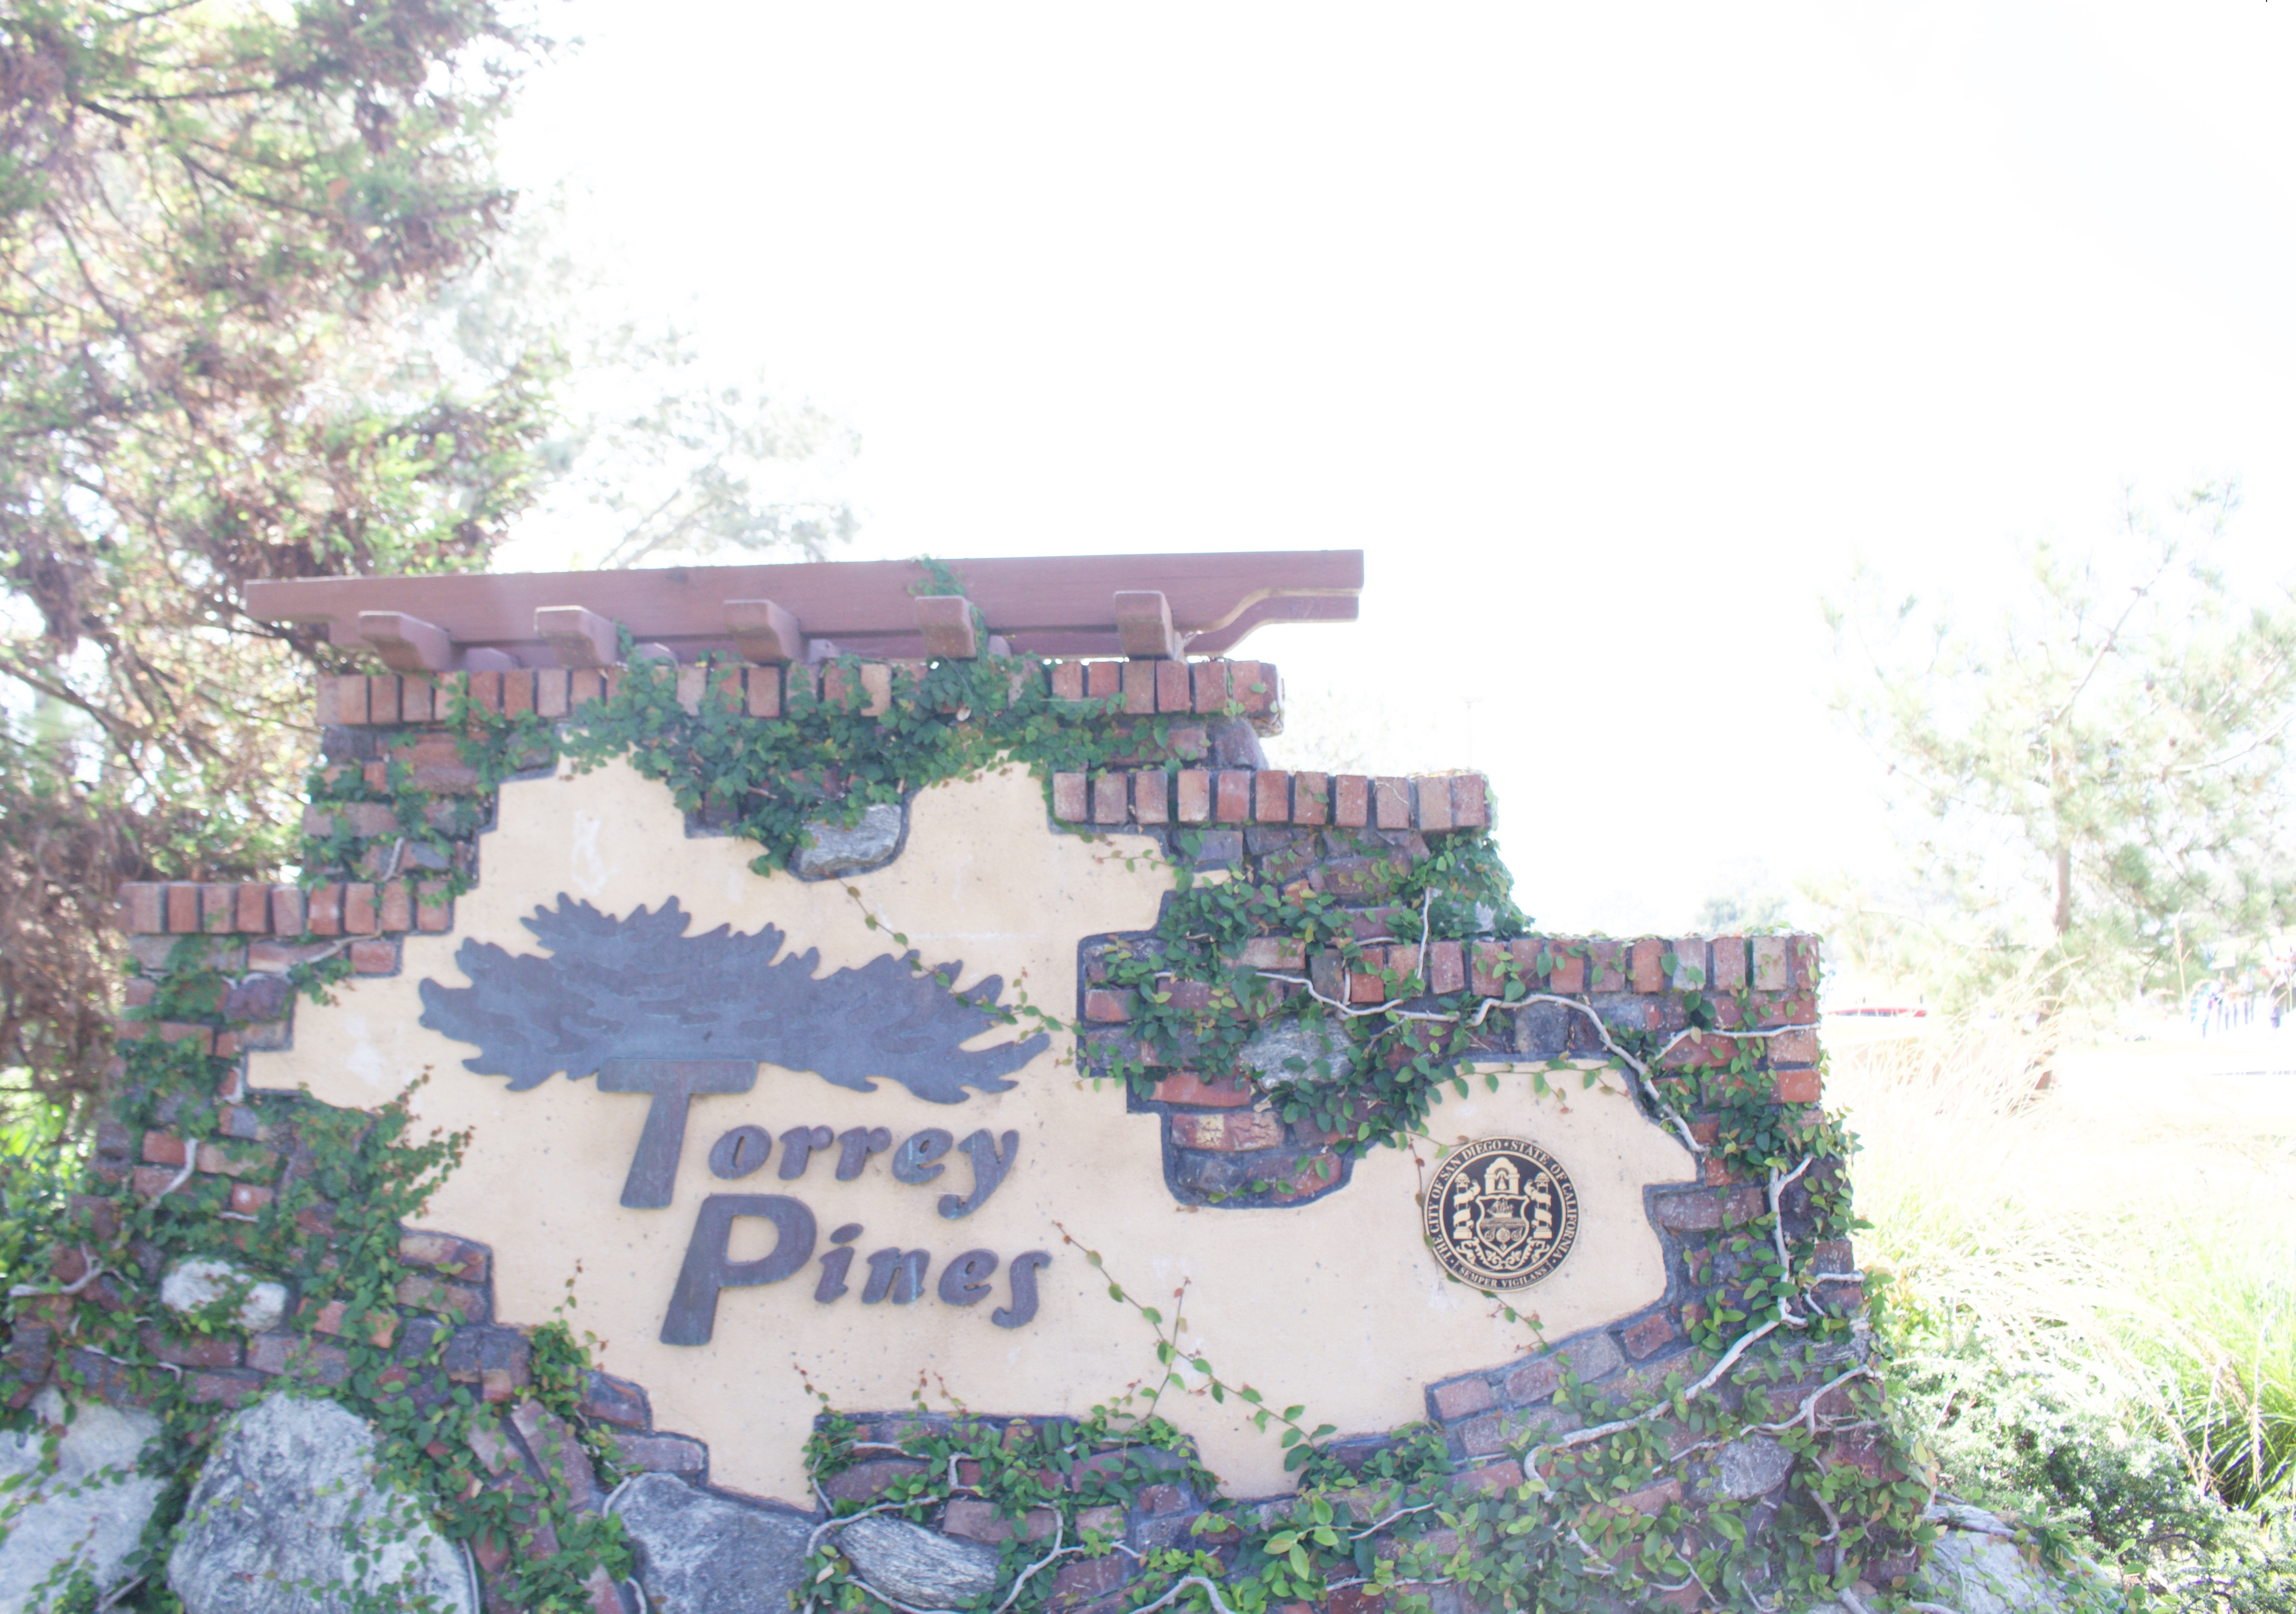 Torrey Pines - My Styled Life